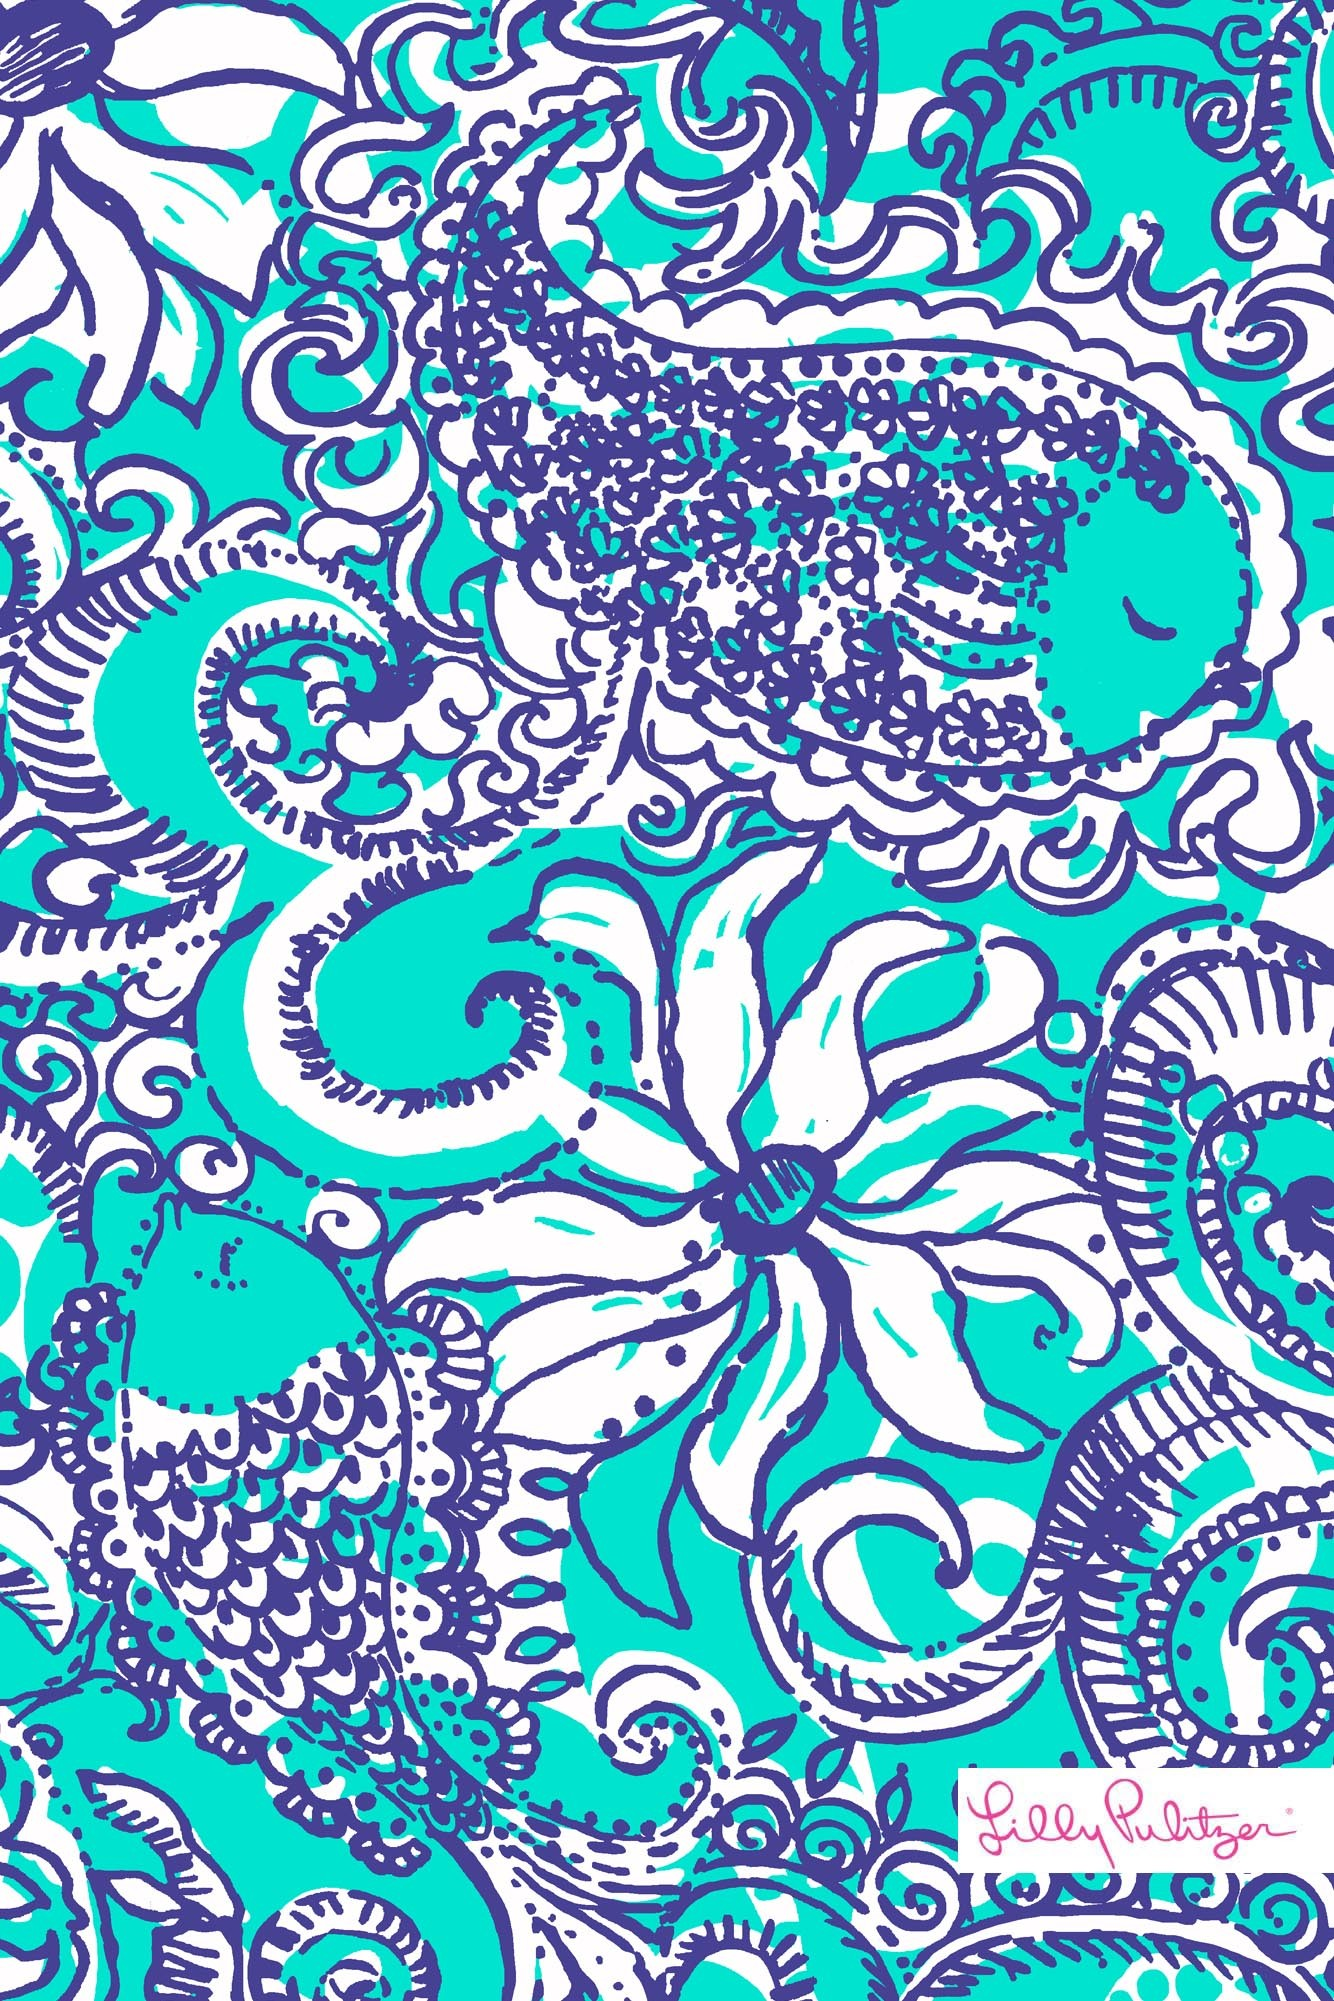 Lilly Pulitzer Wallpaper Desktop 56 images